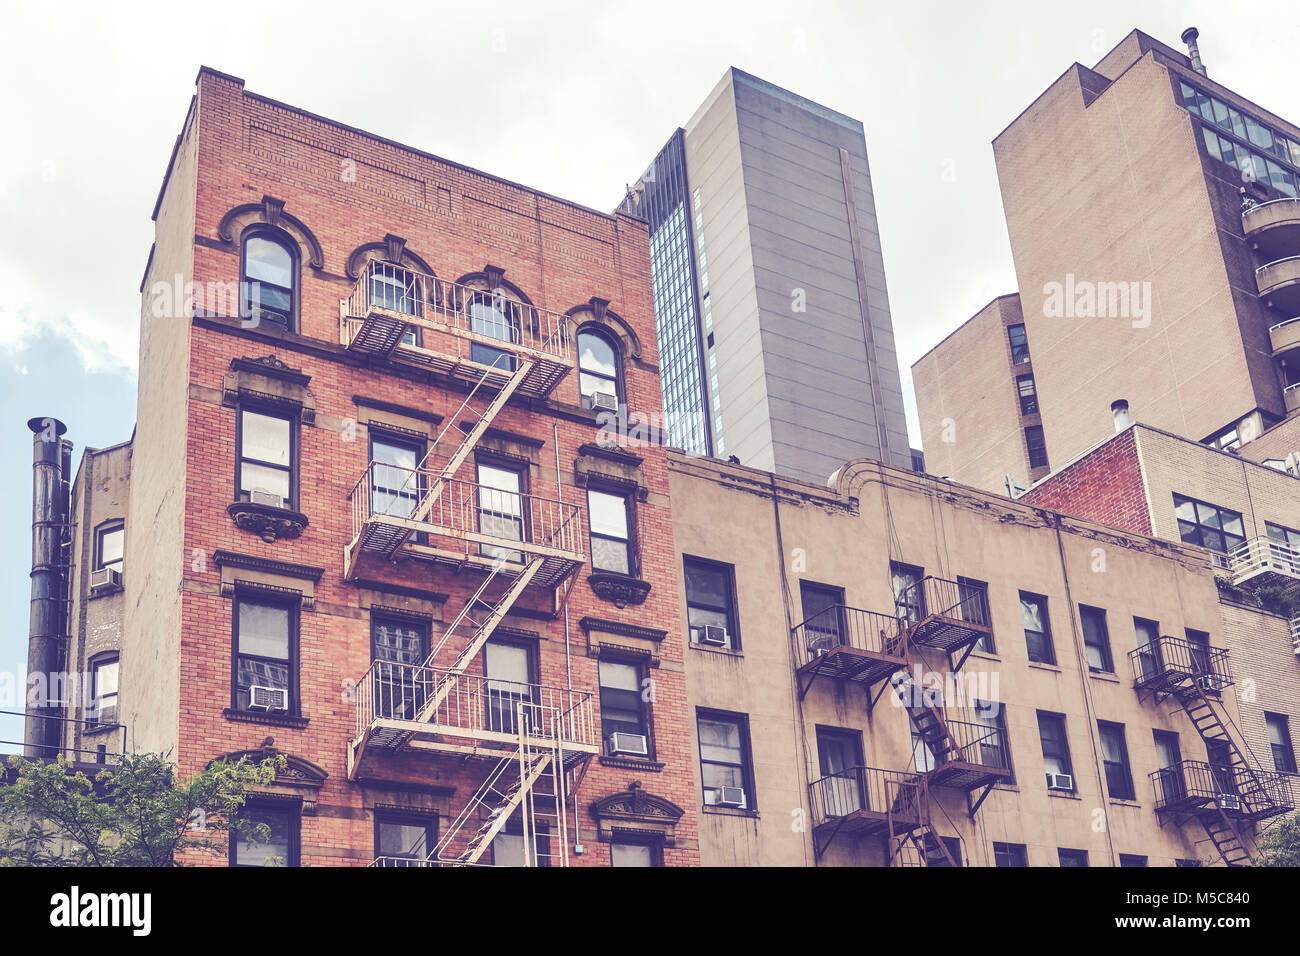 Vintage toned picture of buildings with fire escapes in the New York City, USA. - Stock Image